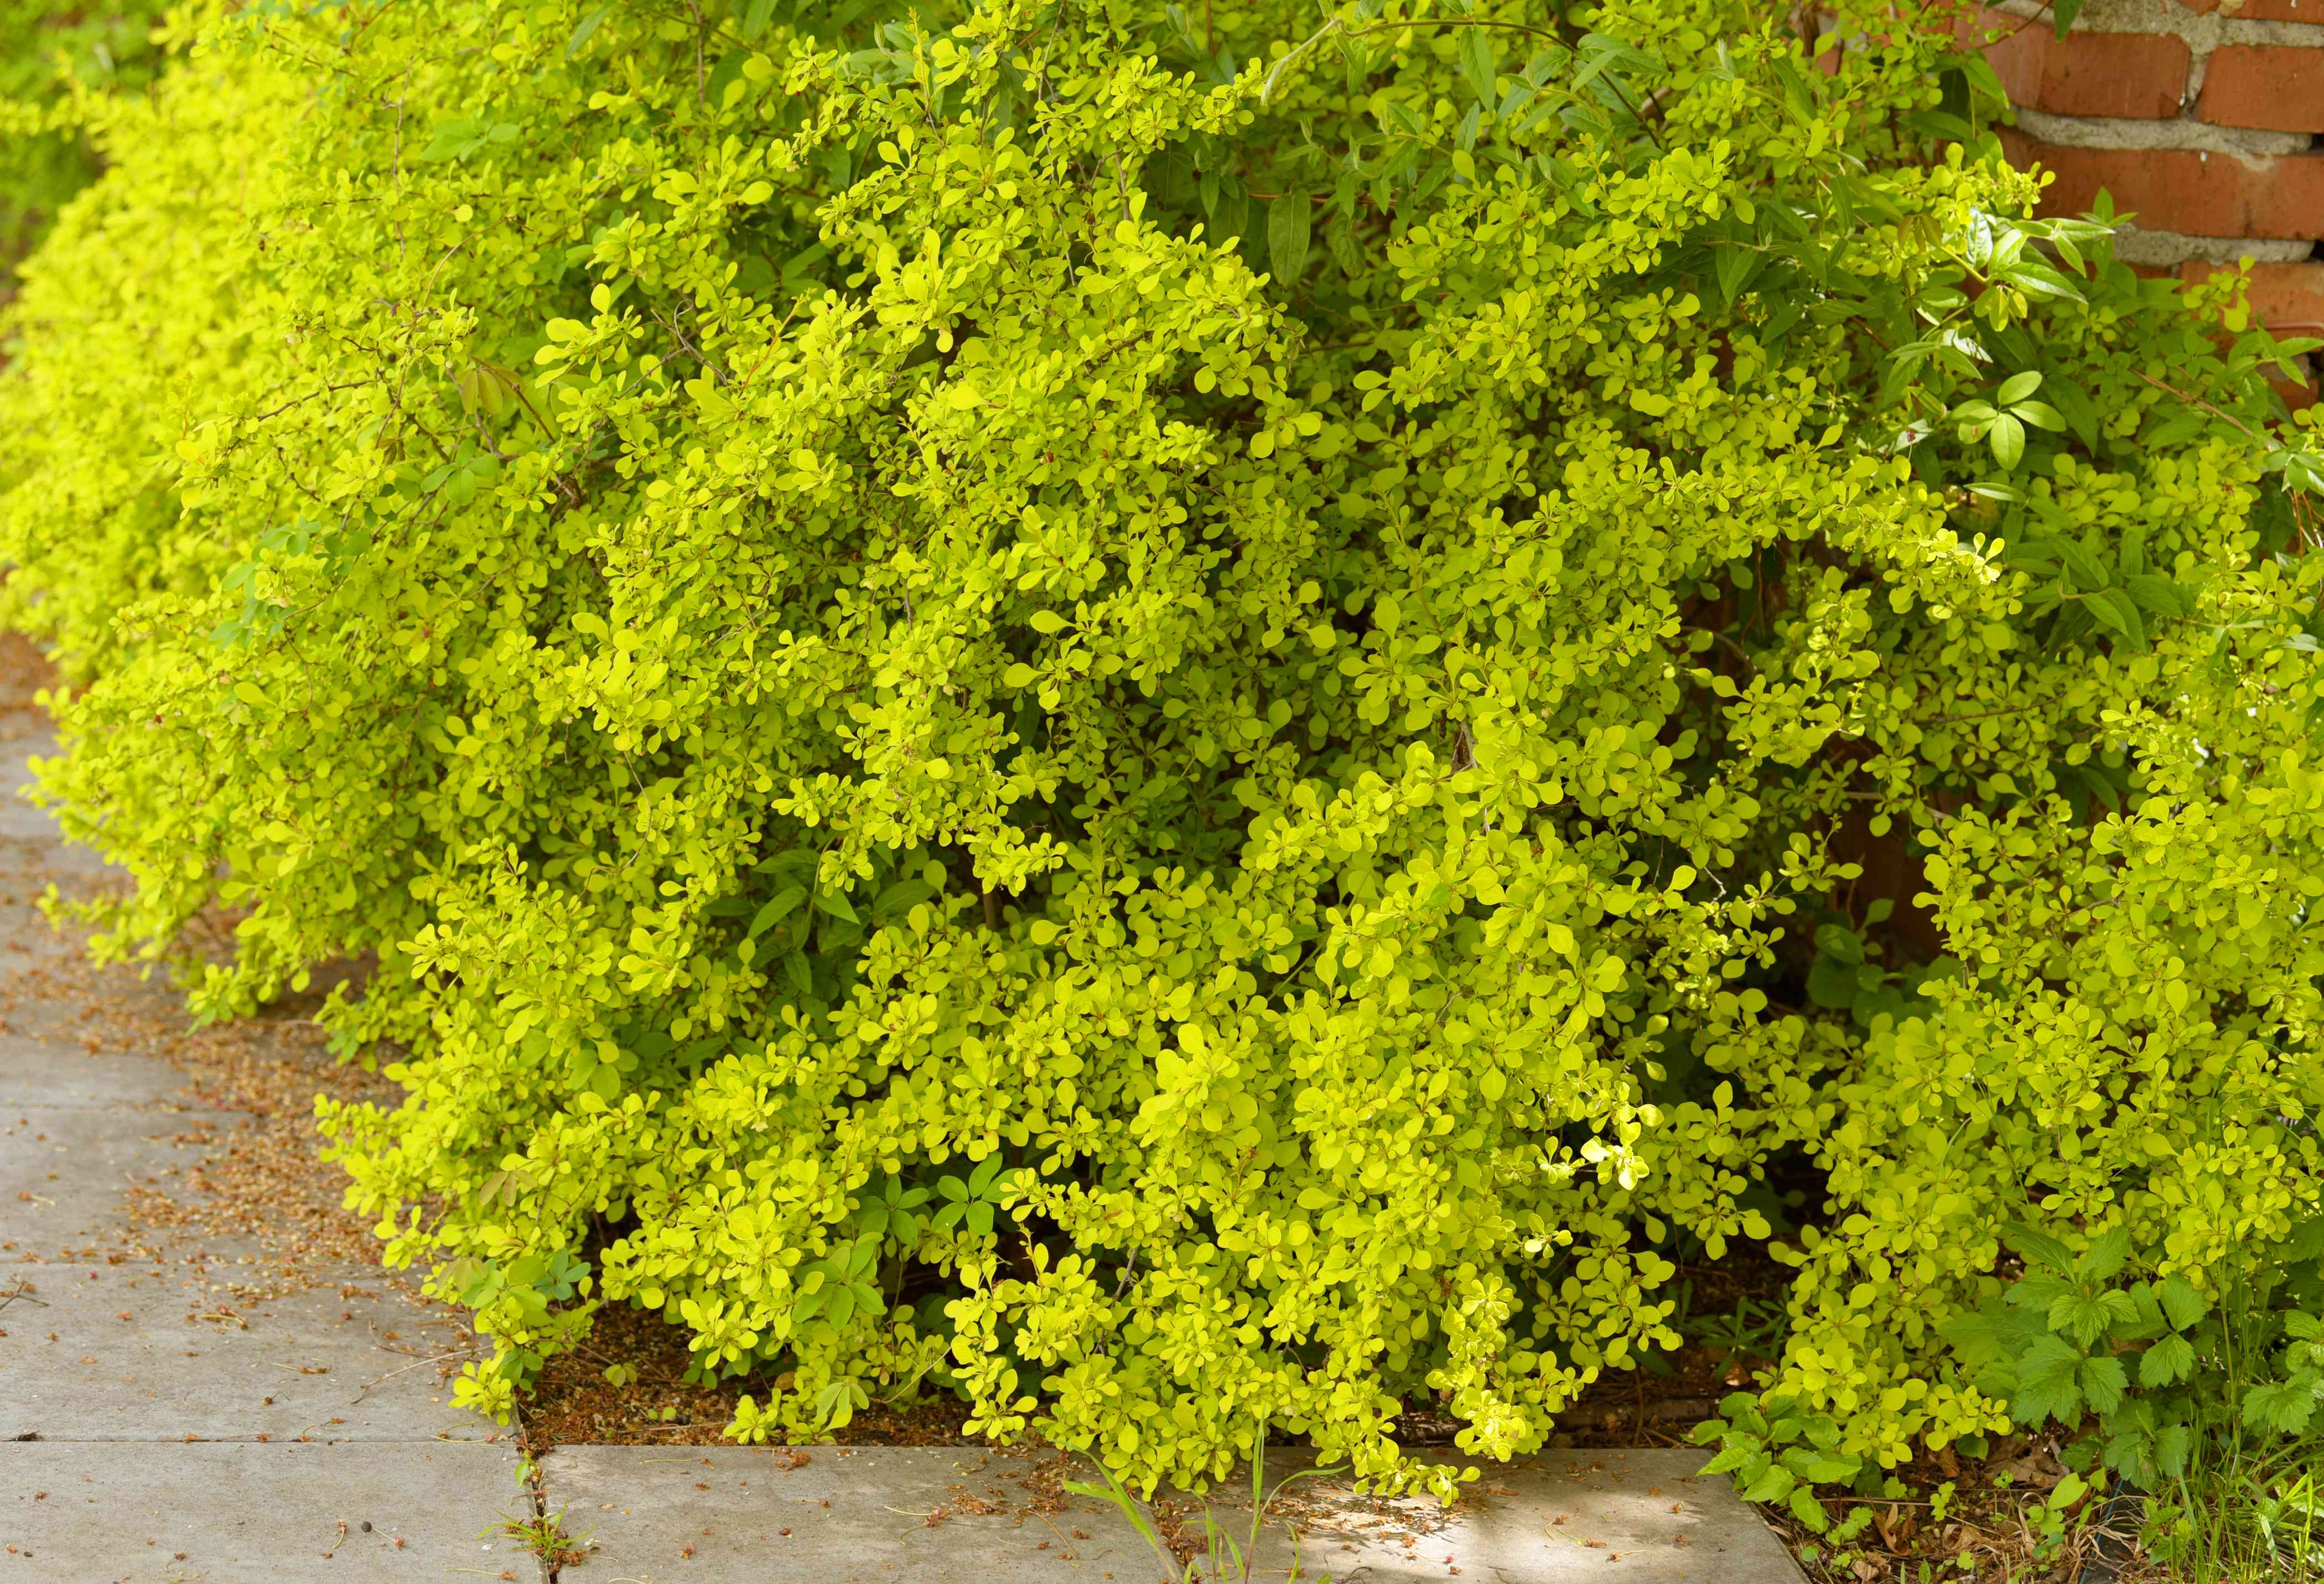 Golden barberry bushes with small yellow-green leaf clusters near pavement